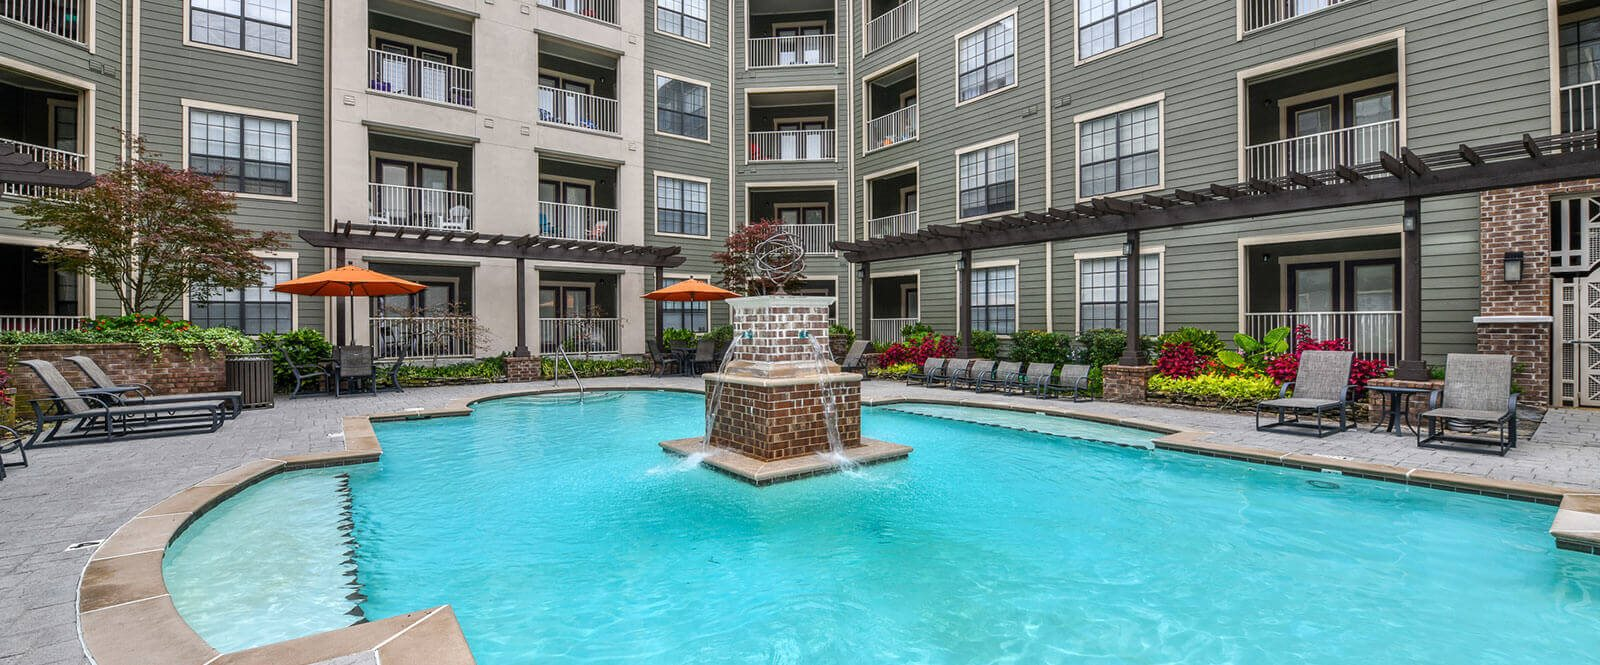 Our refreshing pool with a tranquil fountain is a wonderful sight and sound! Open from 10 am - 10 pm at The Bristol on Union Apartment Homes, Memphis, TN 38104